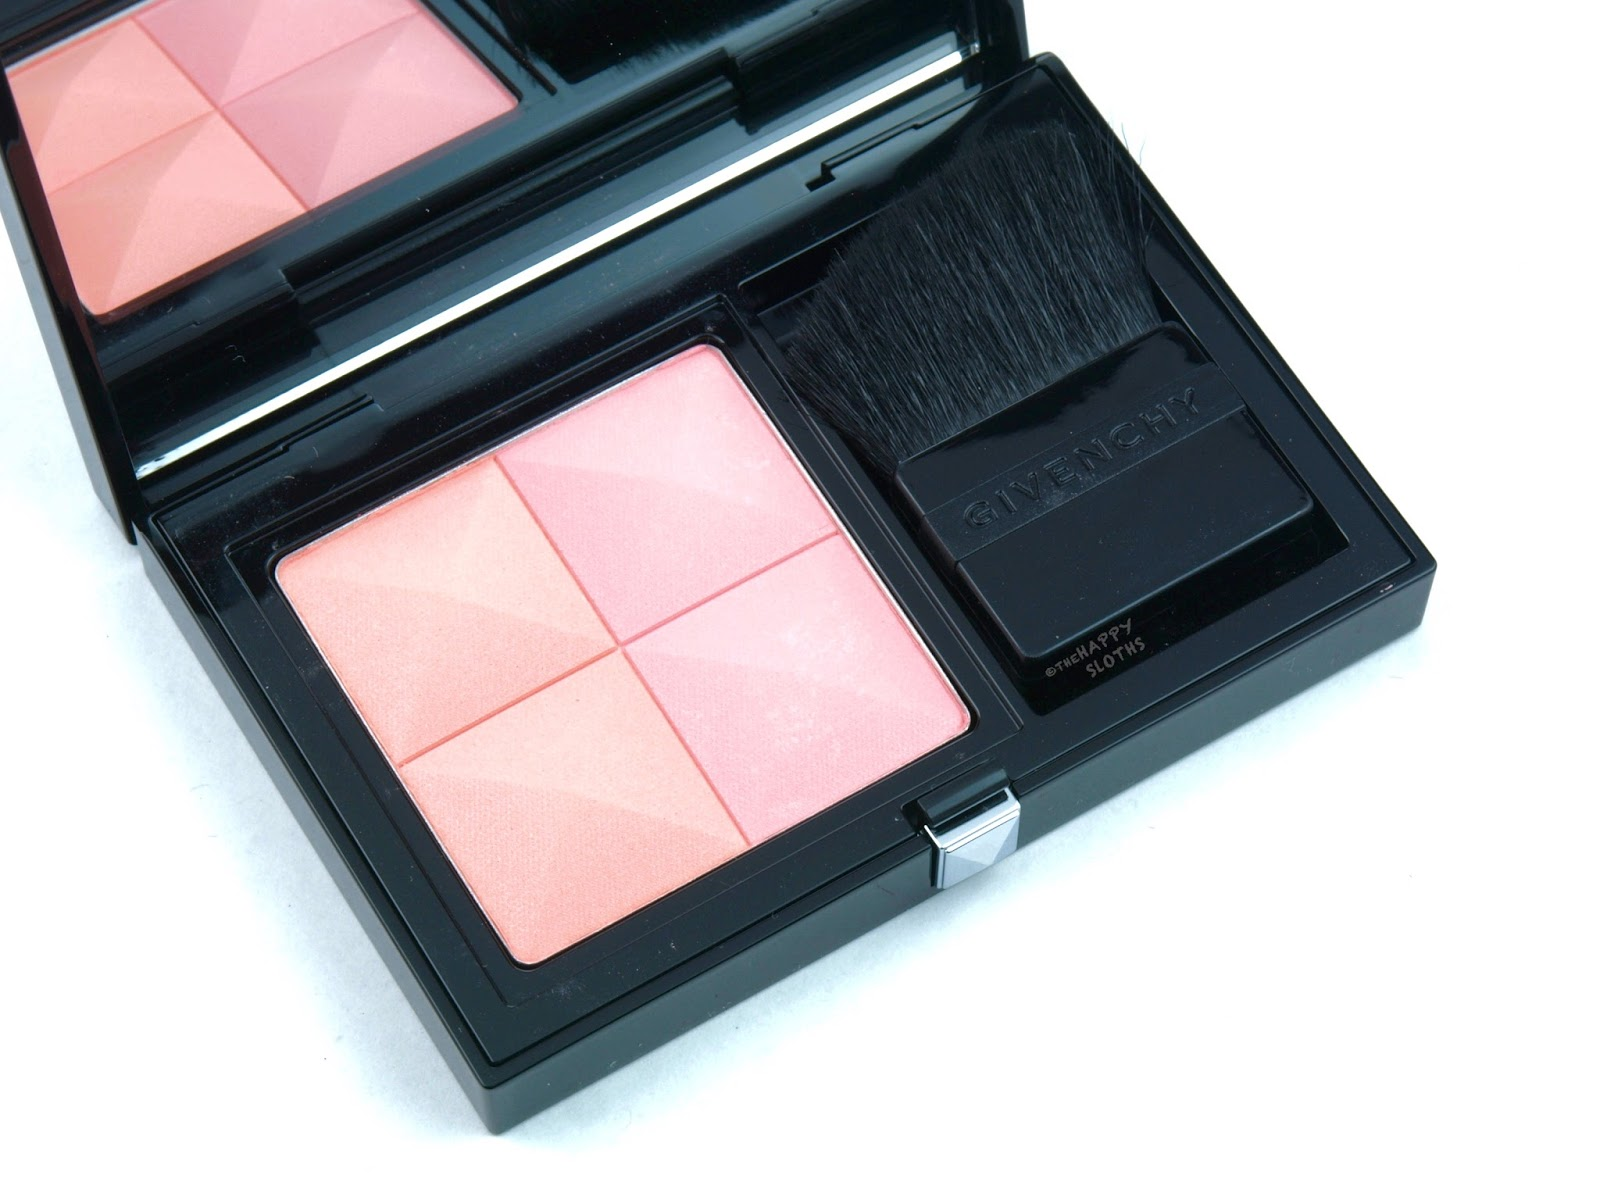 "Givenchy Prisme Blush Highlight & Structure Powder Blush Duo ""04 Rite"": Review and Swatches"